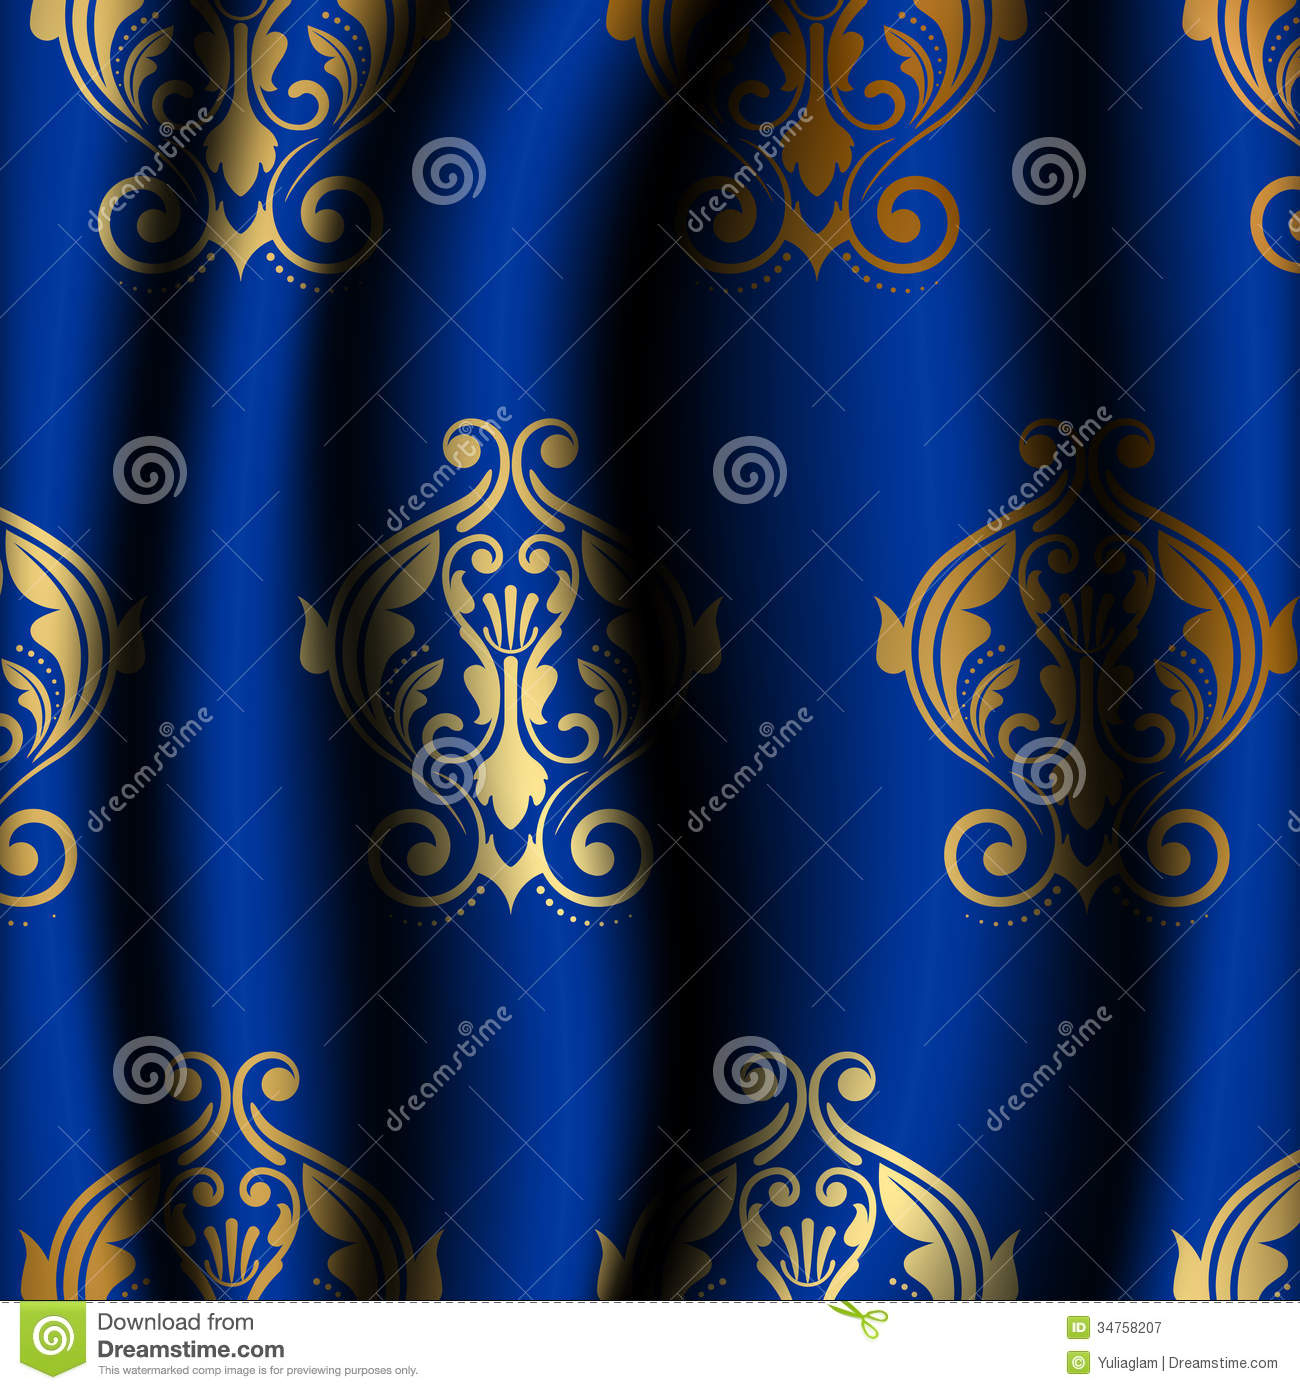 Uxury Blue Material With Gold Pattern Royalty Free Stock